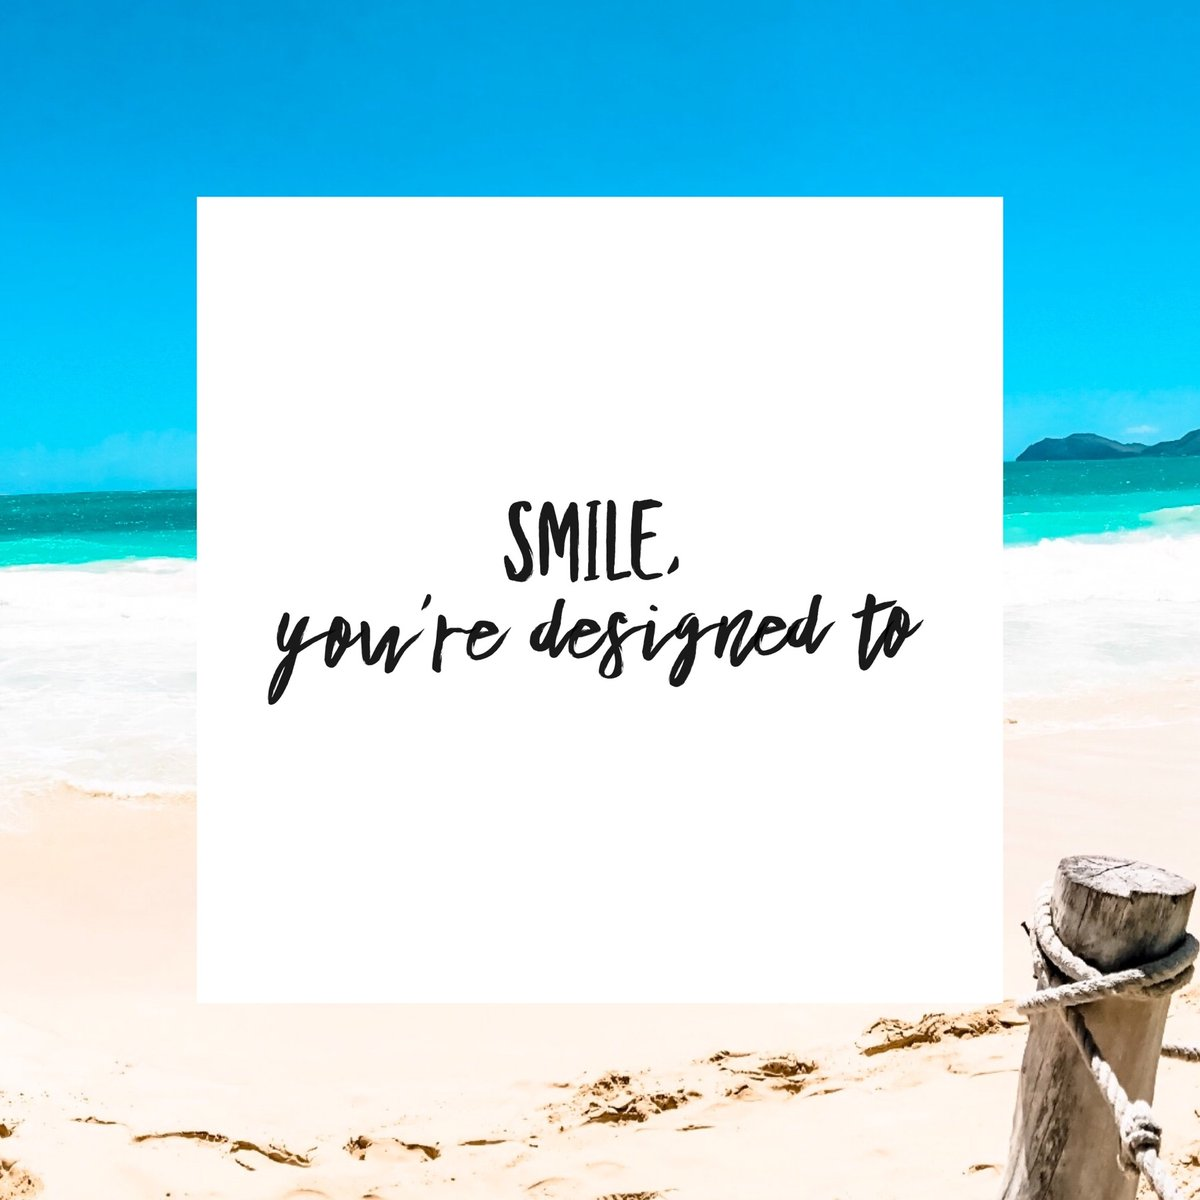 It takes more facial muscles to FROWN than to SMILE 😁  Have a great day!   #smile #bigsmile #saycheese #behappy #bepositive #positivity #positivemindset #liveyourbestlife #quoteoftheday #quotesdaily https://t.co/KgXhhSJN4i